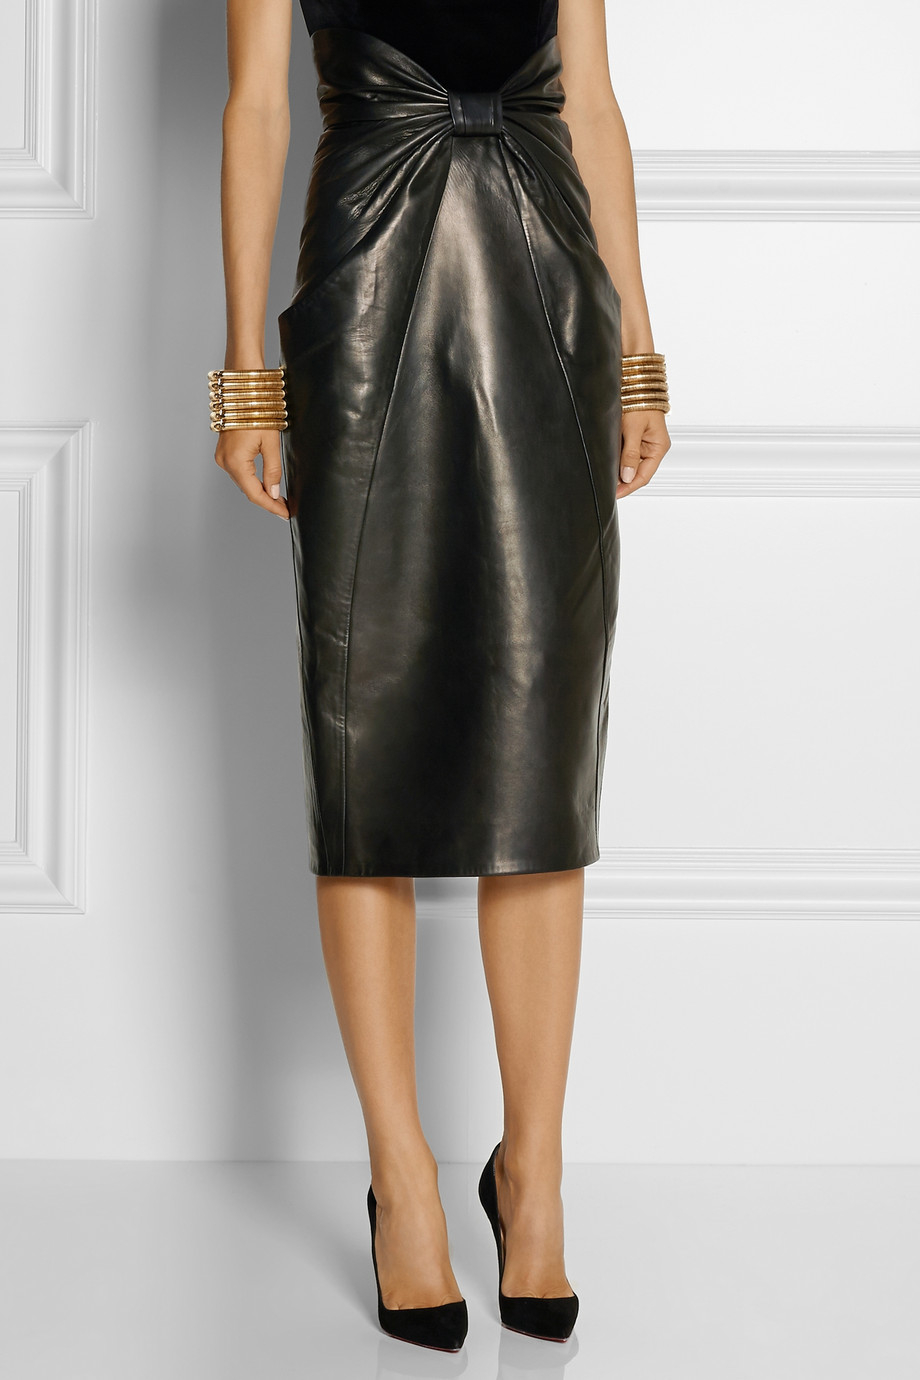 balmain ruched leather midi skirt in black lyst